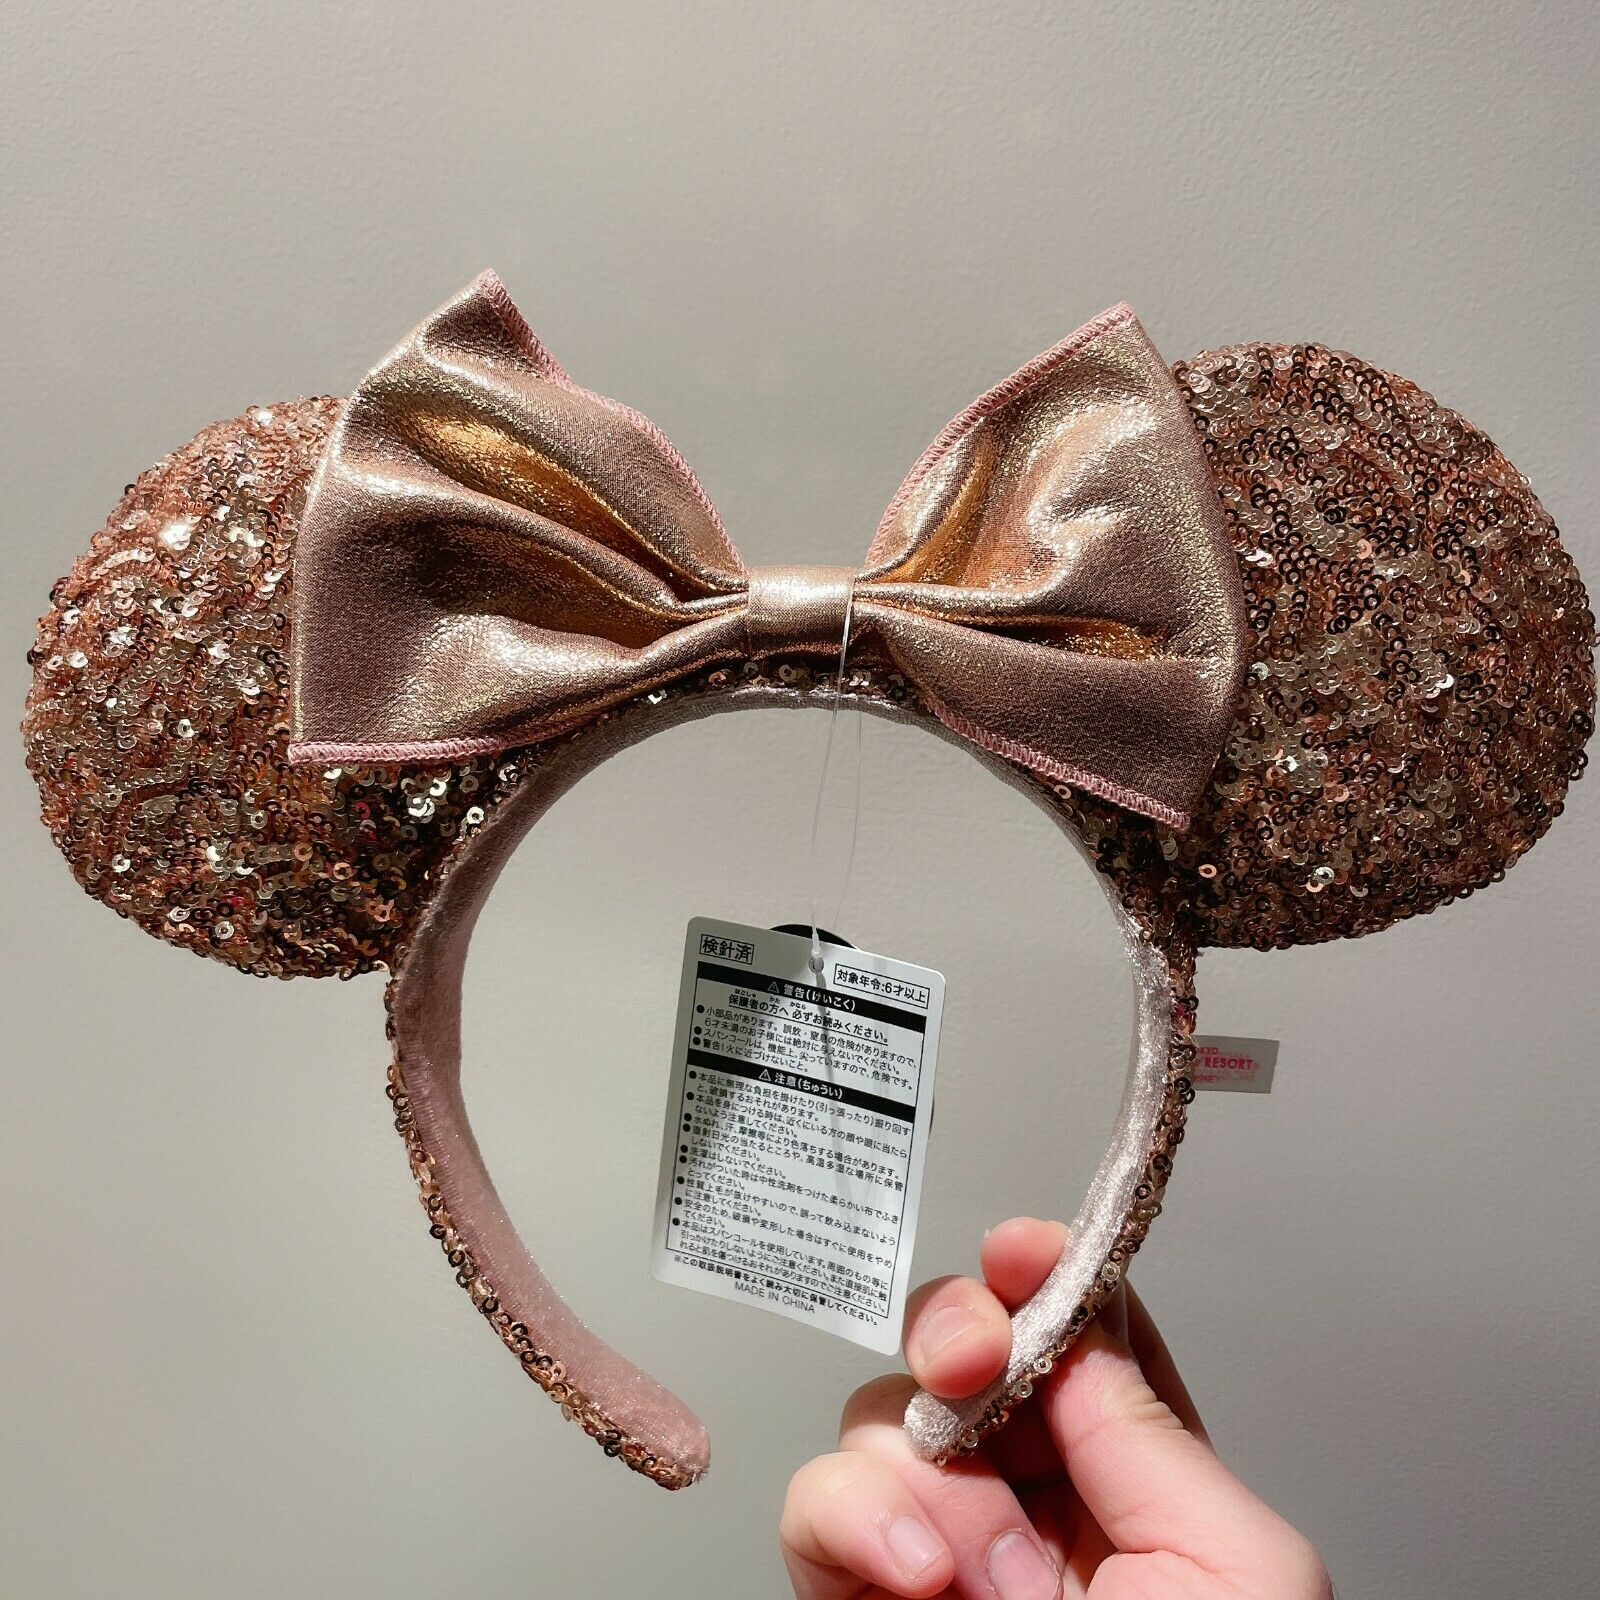 nwt authentic minnie mouse ear headband rose gold disneyland disney park store. Black Bedroom Furniture Sets. Home Design Ideas